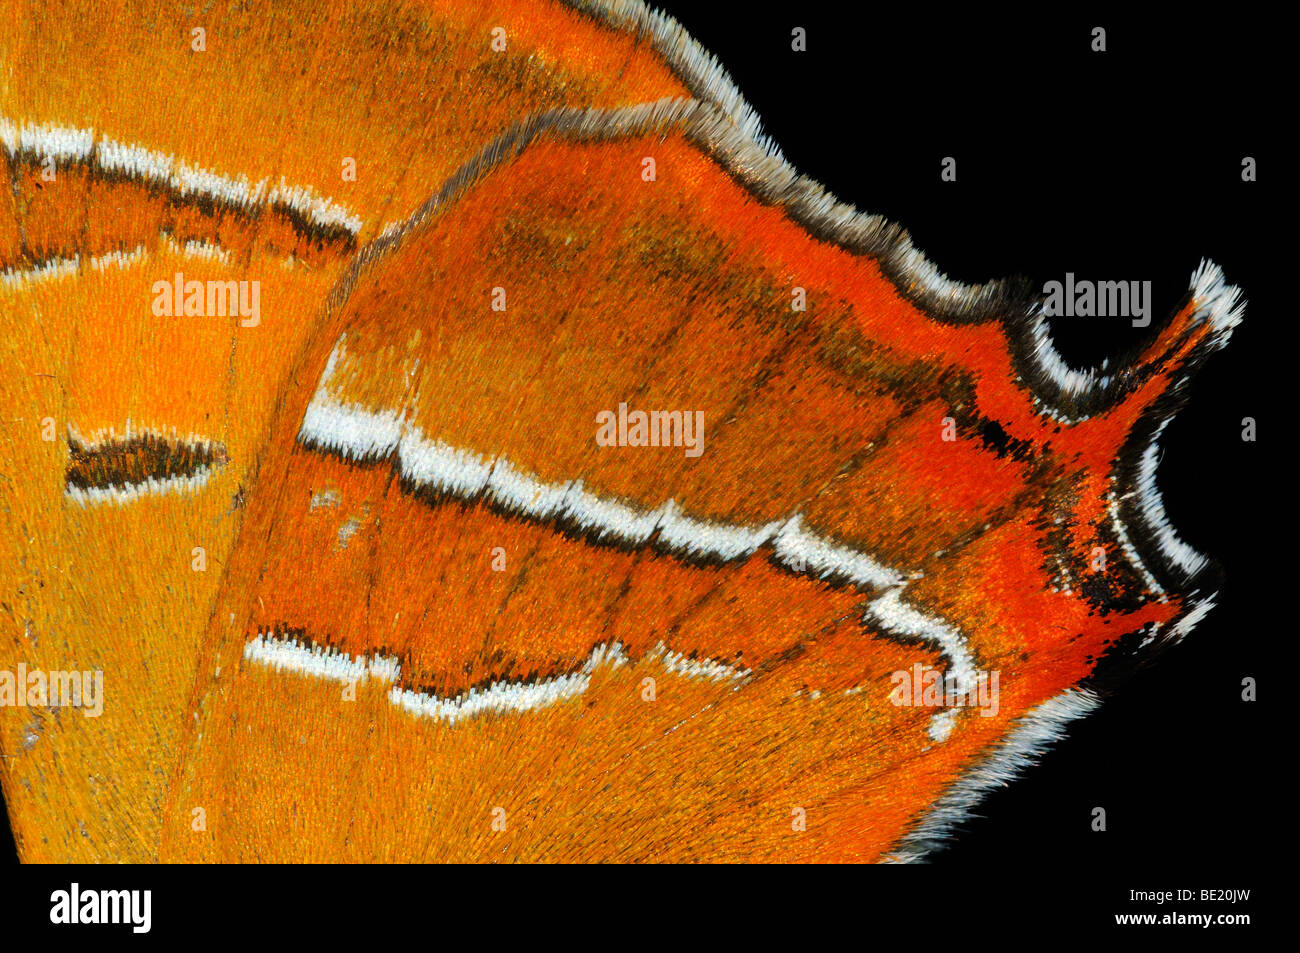 Brown Hairstreak Butterfly (Thecla betulae) close-up of rear wing showing tail, Oxfordshire, UK. - Stock Image